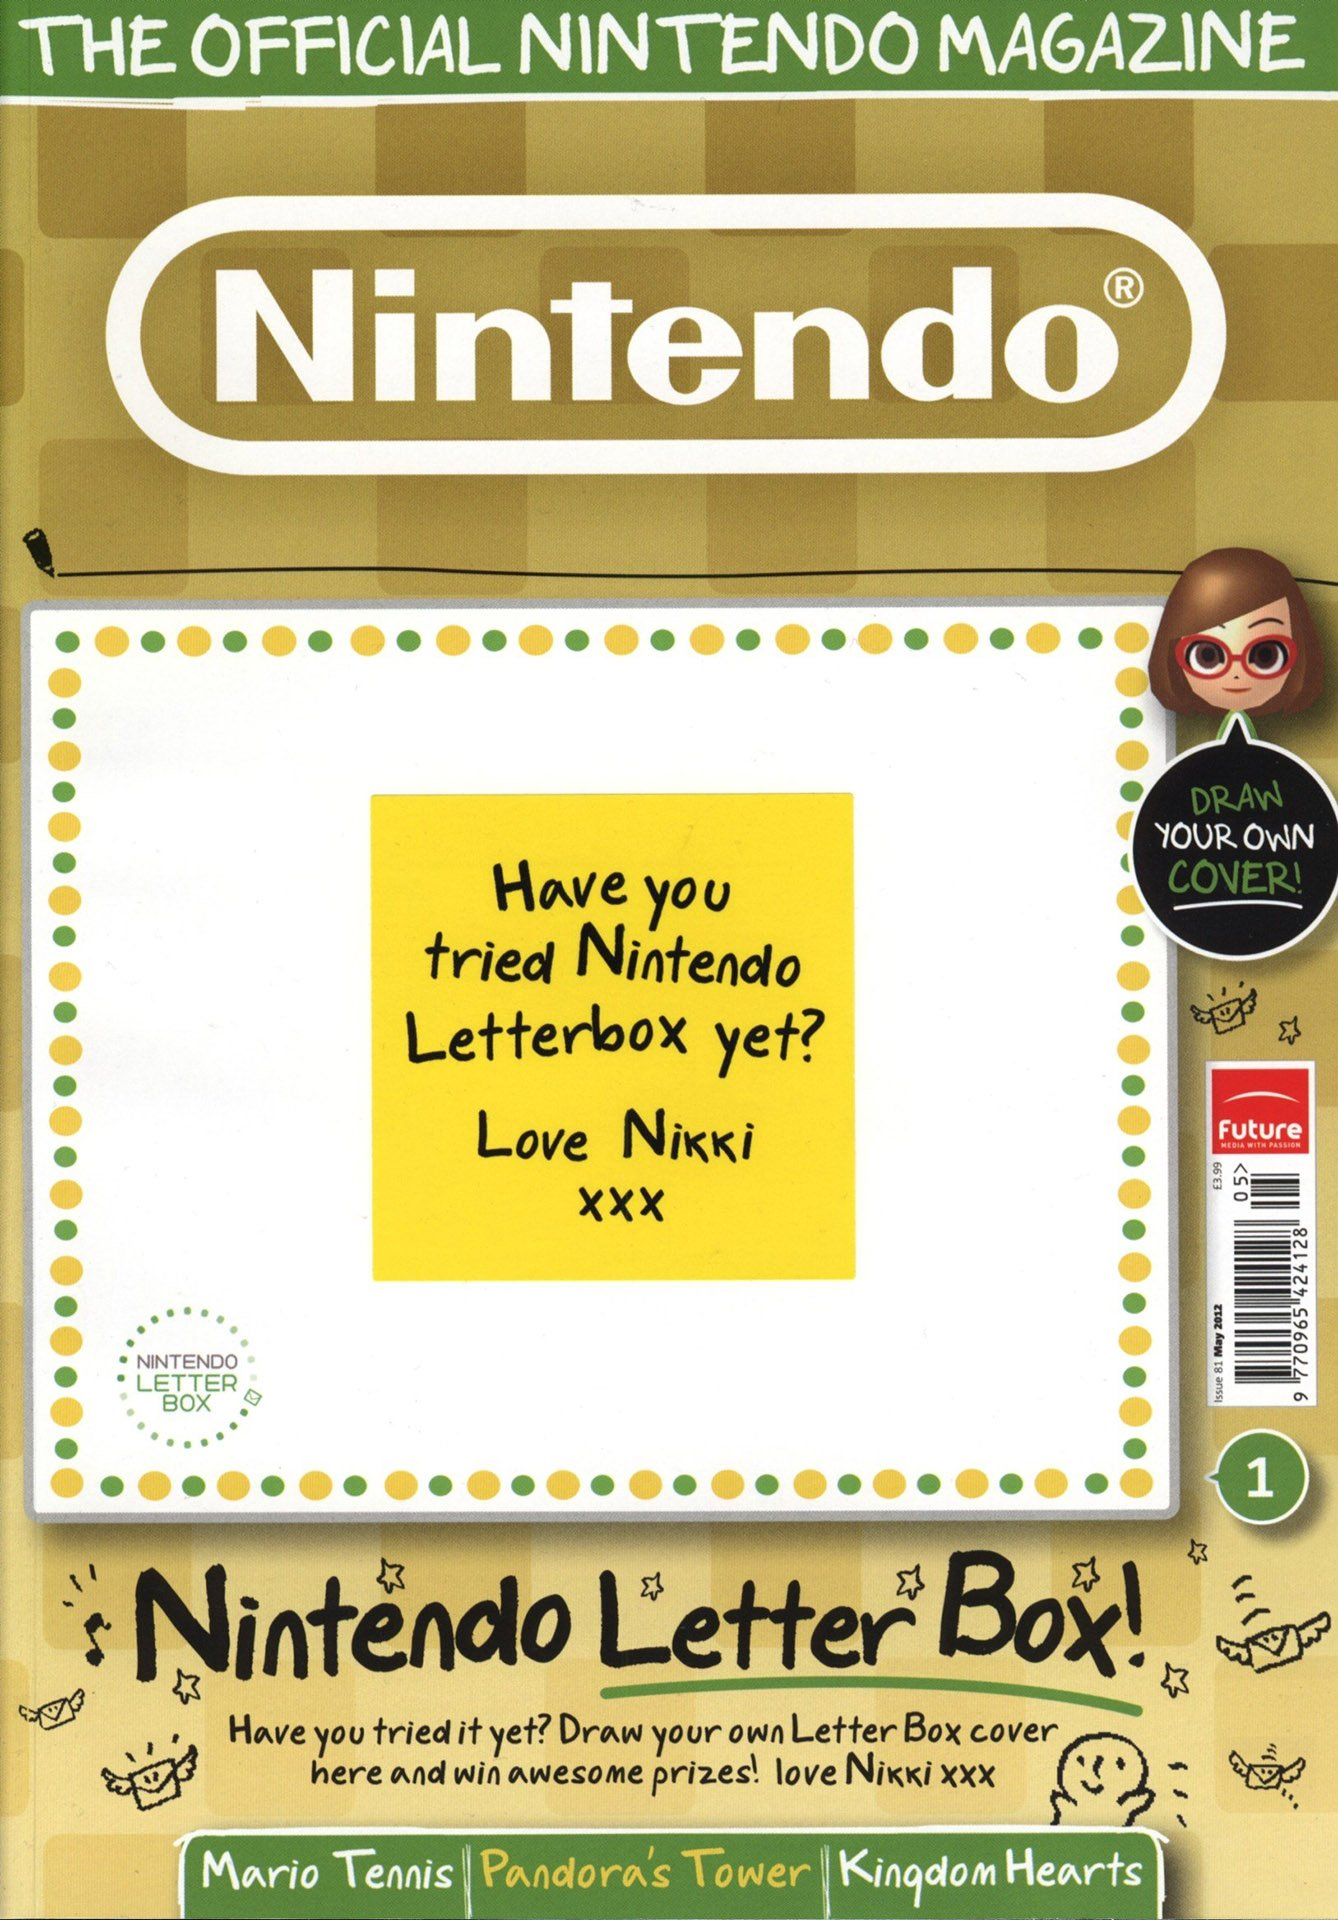 Official Nintendo Magazine 081 (May 2012)